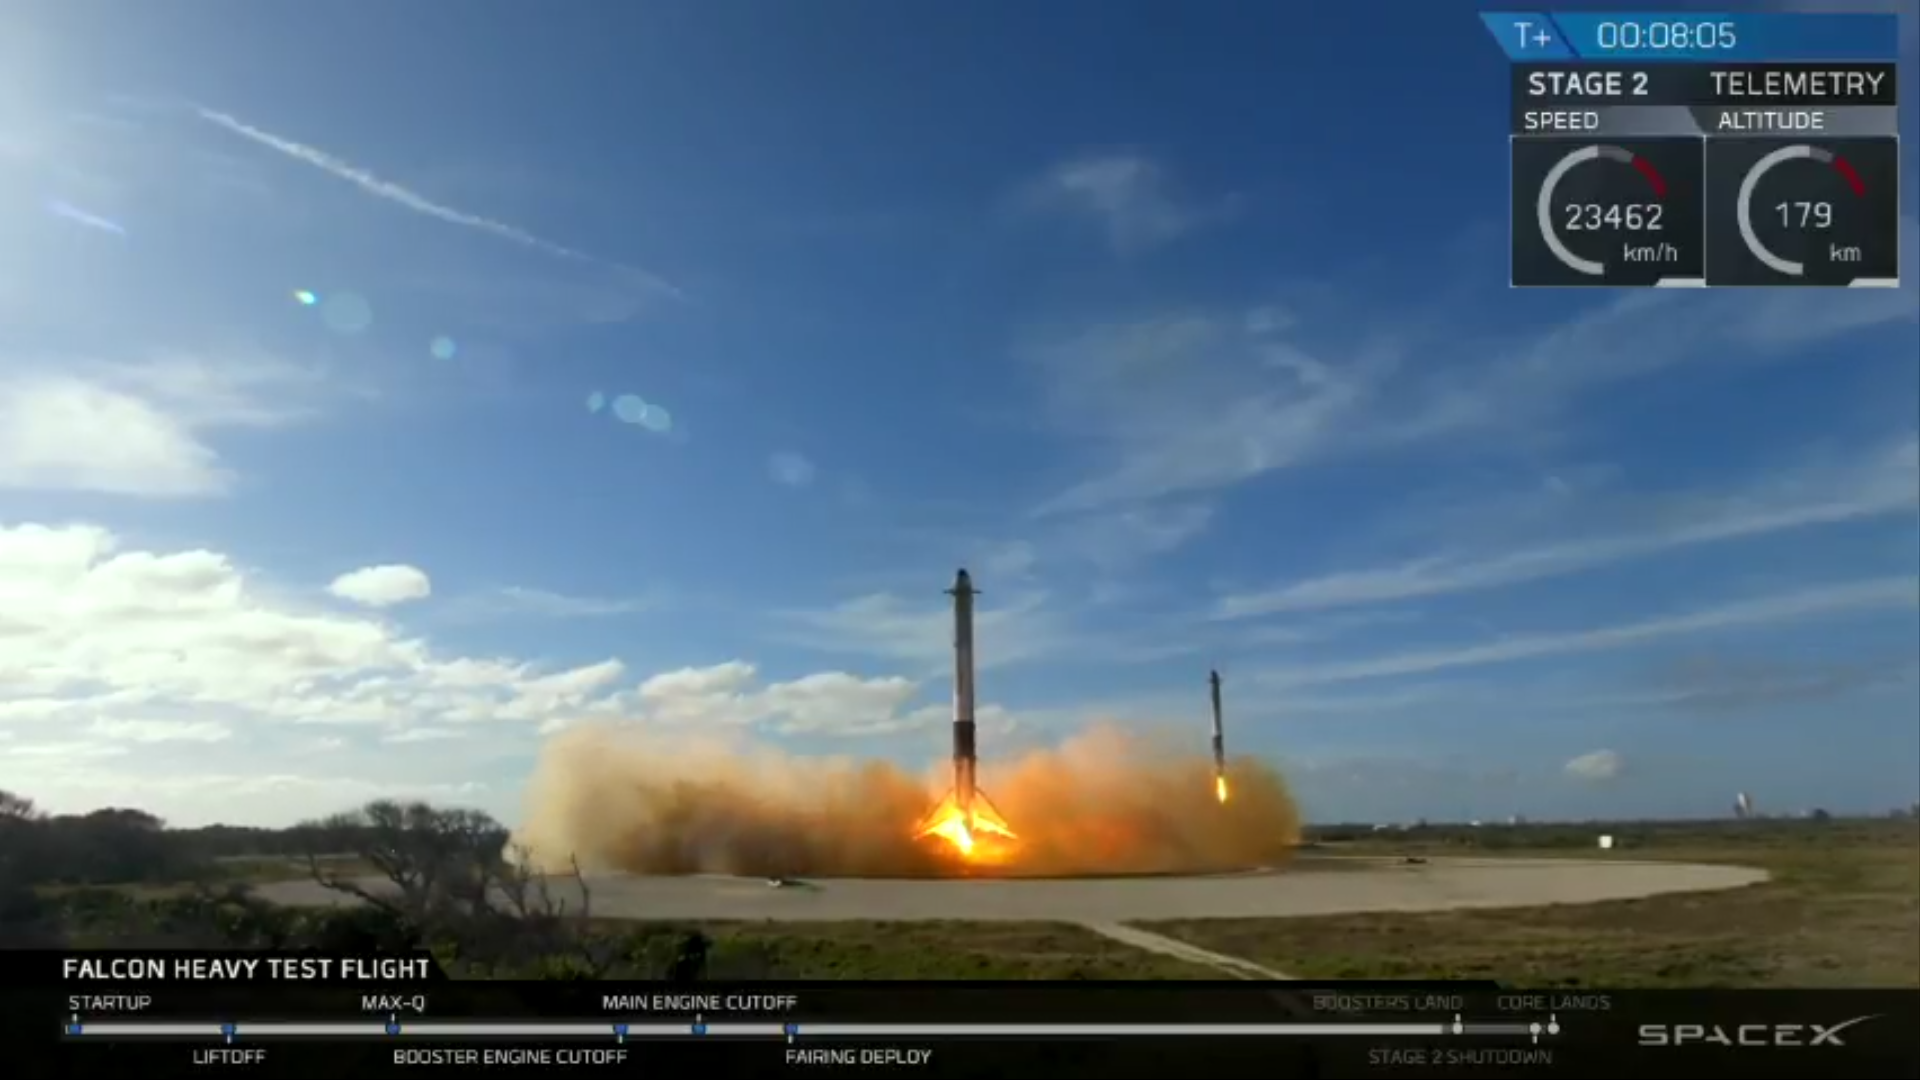 Falcon Heavy boosters landing upright